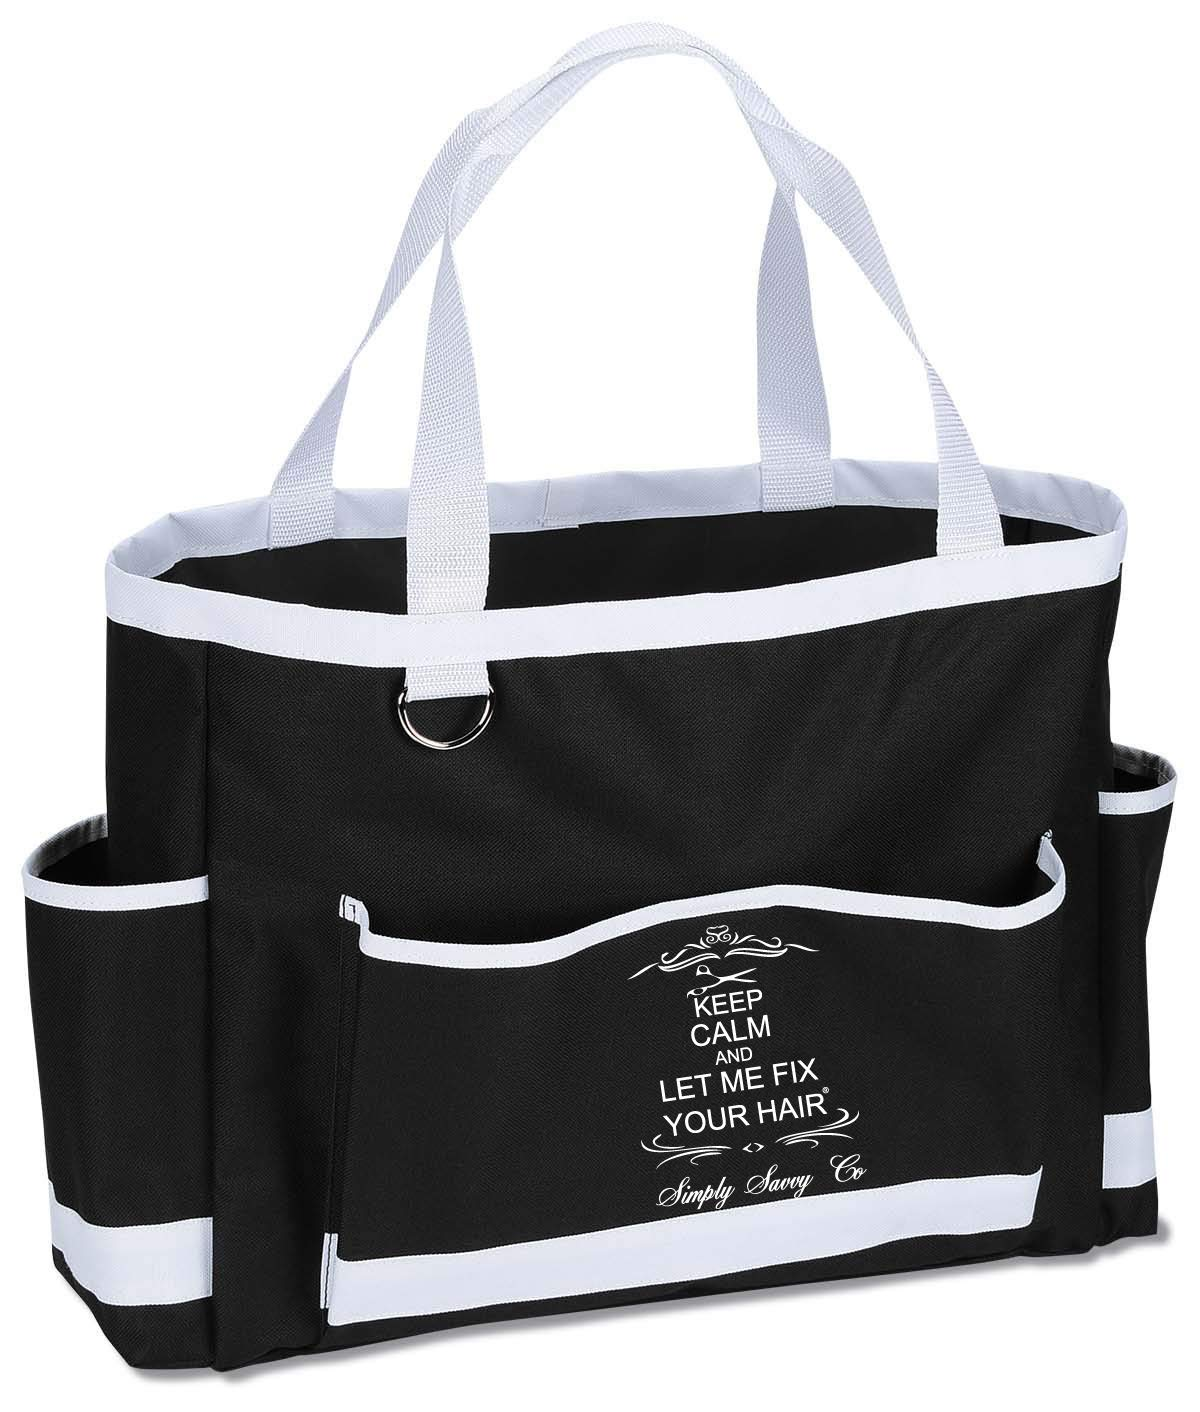 Simply Savvy Co USA Hairstylist Hair Work Tote or Gifts for Hairdressers (CarryAll)